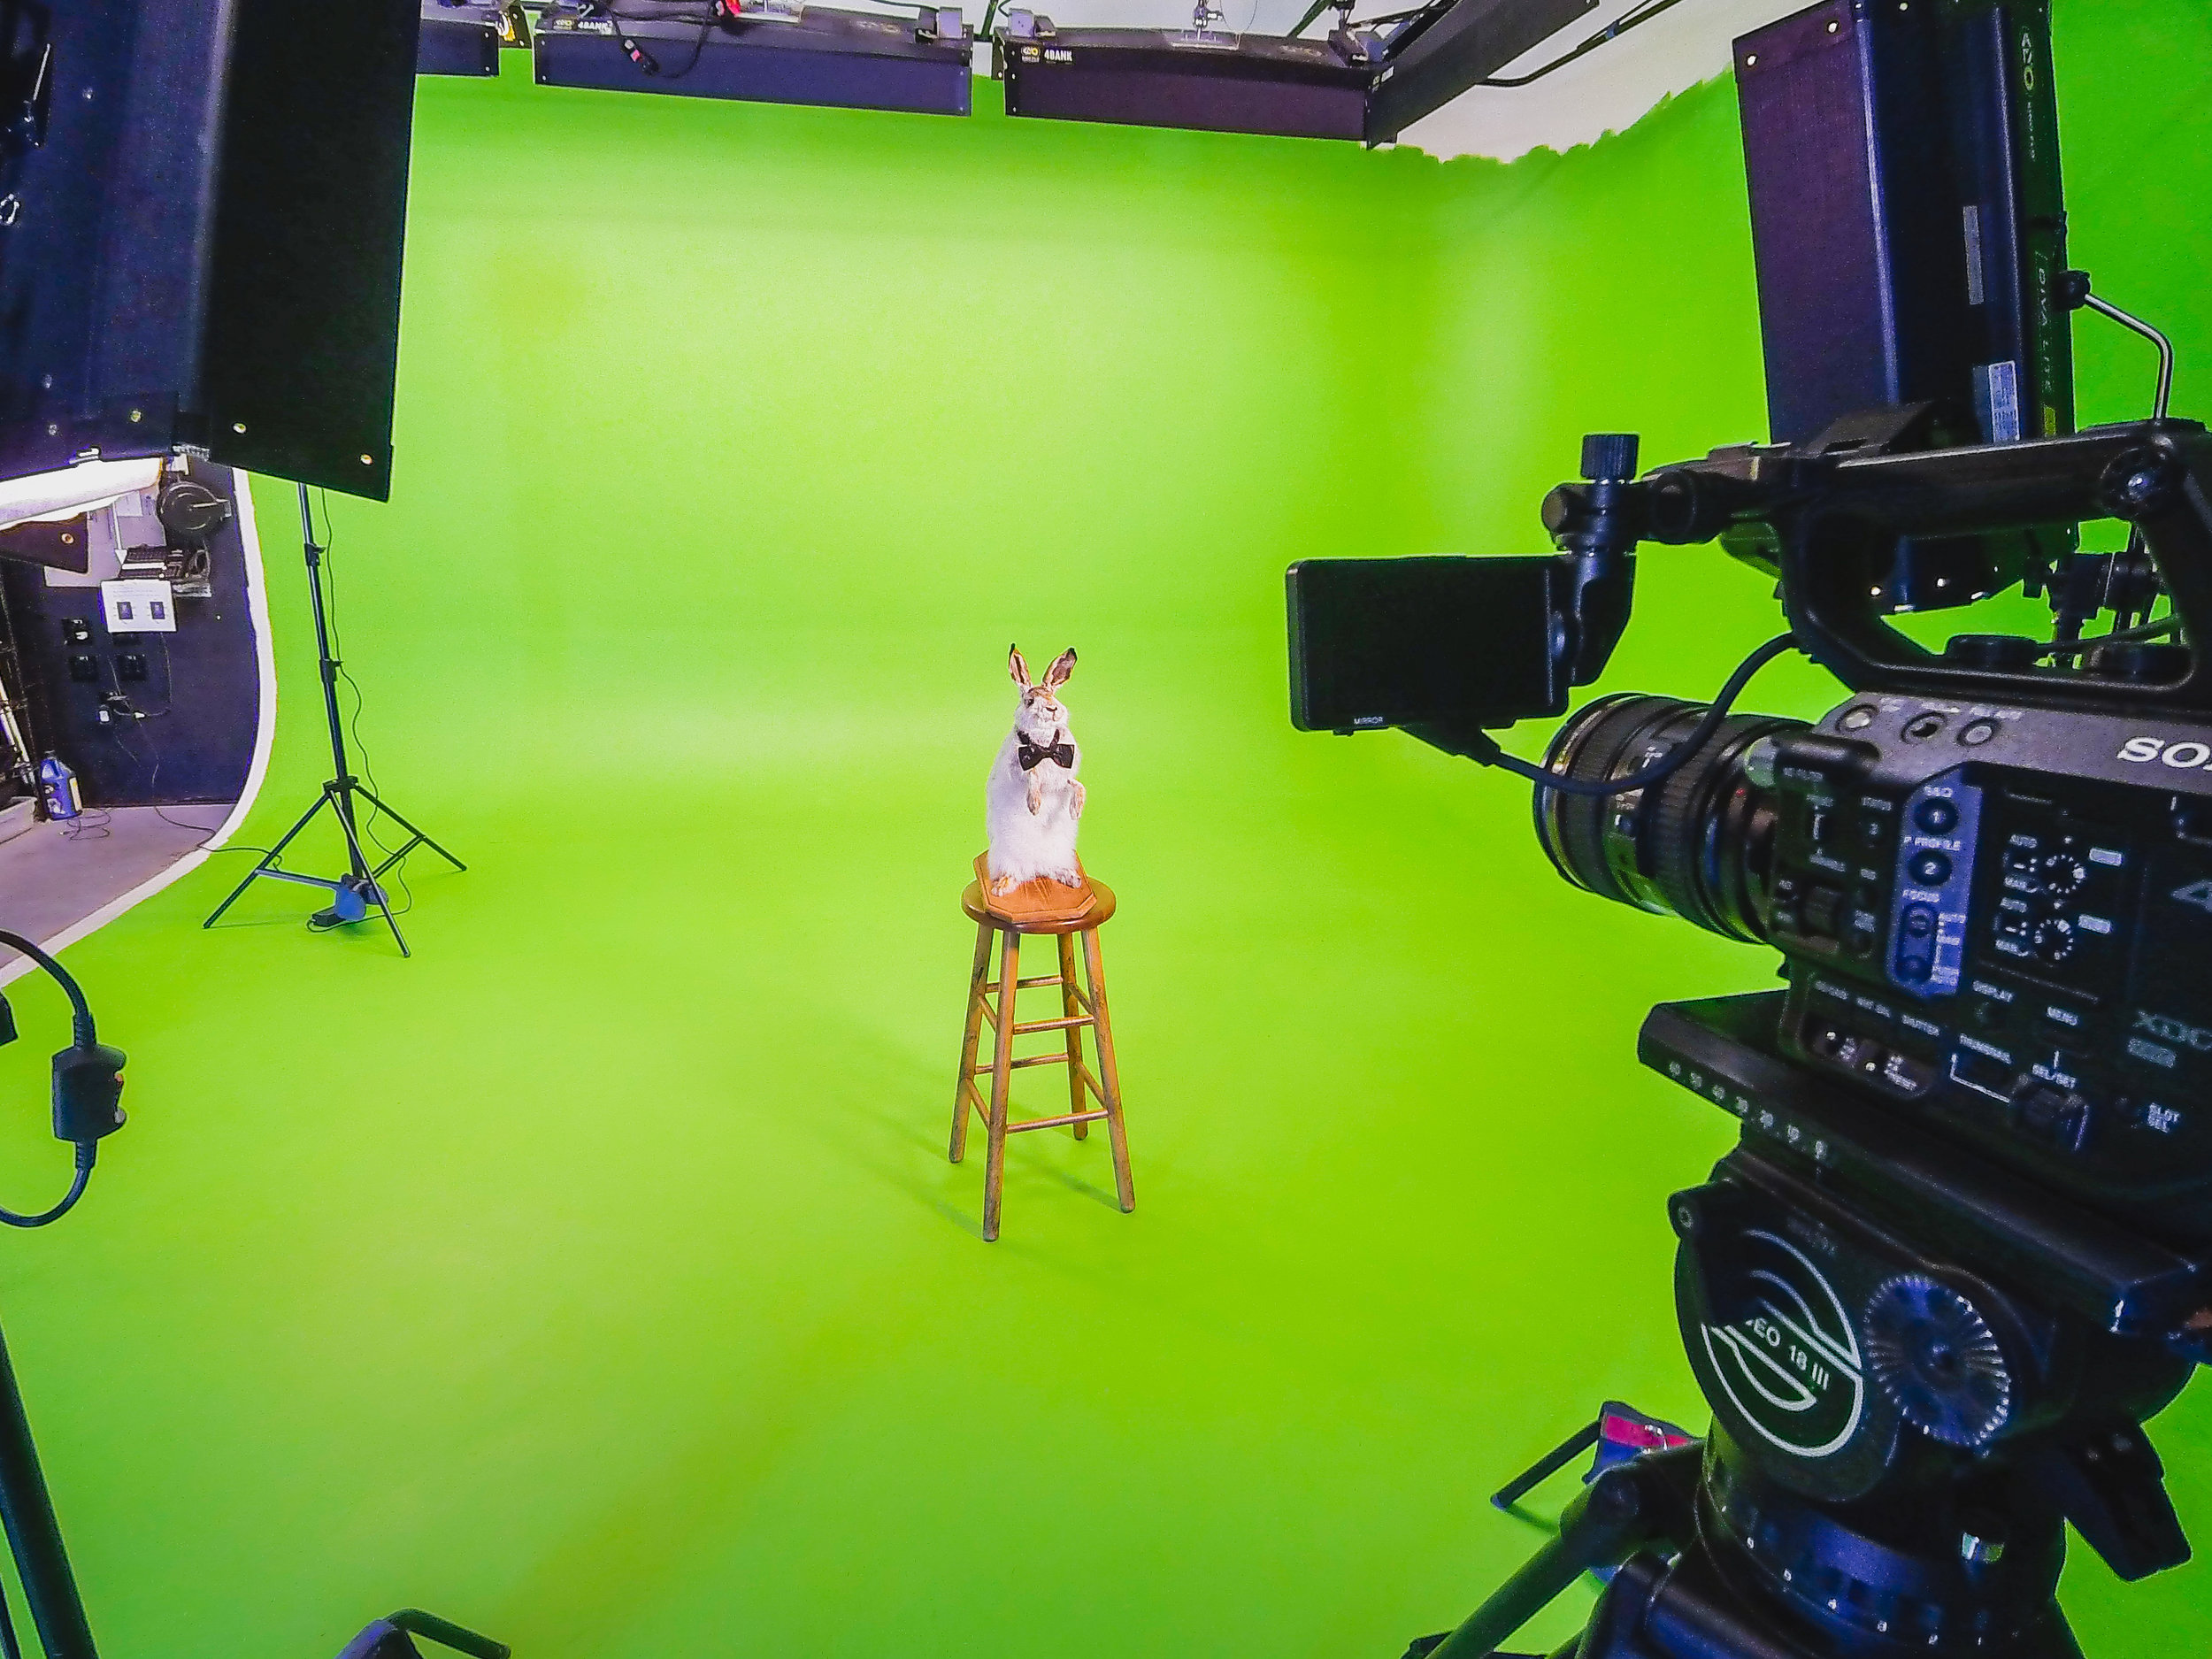 Mr. Muffin prepares for his closeup in our high end studio.